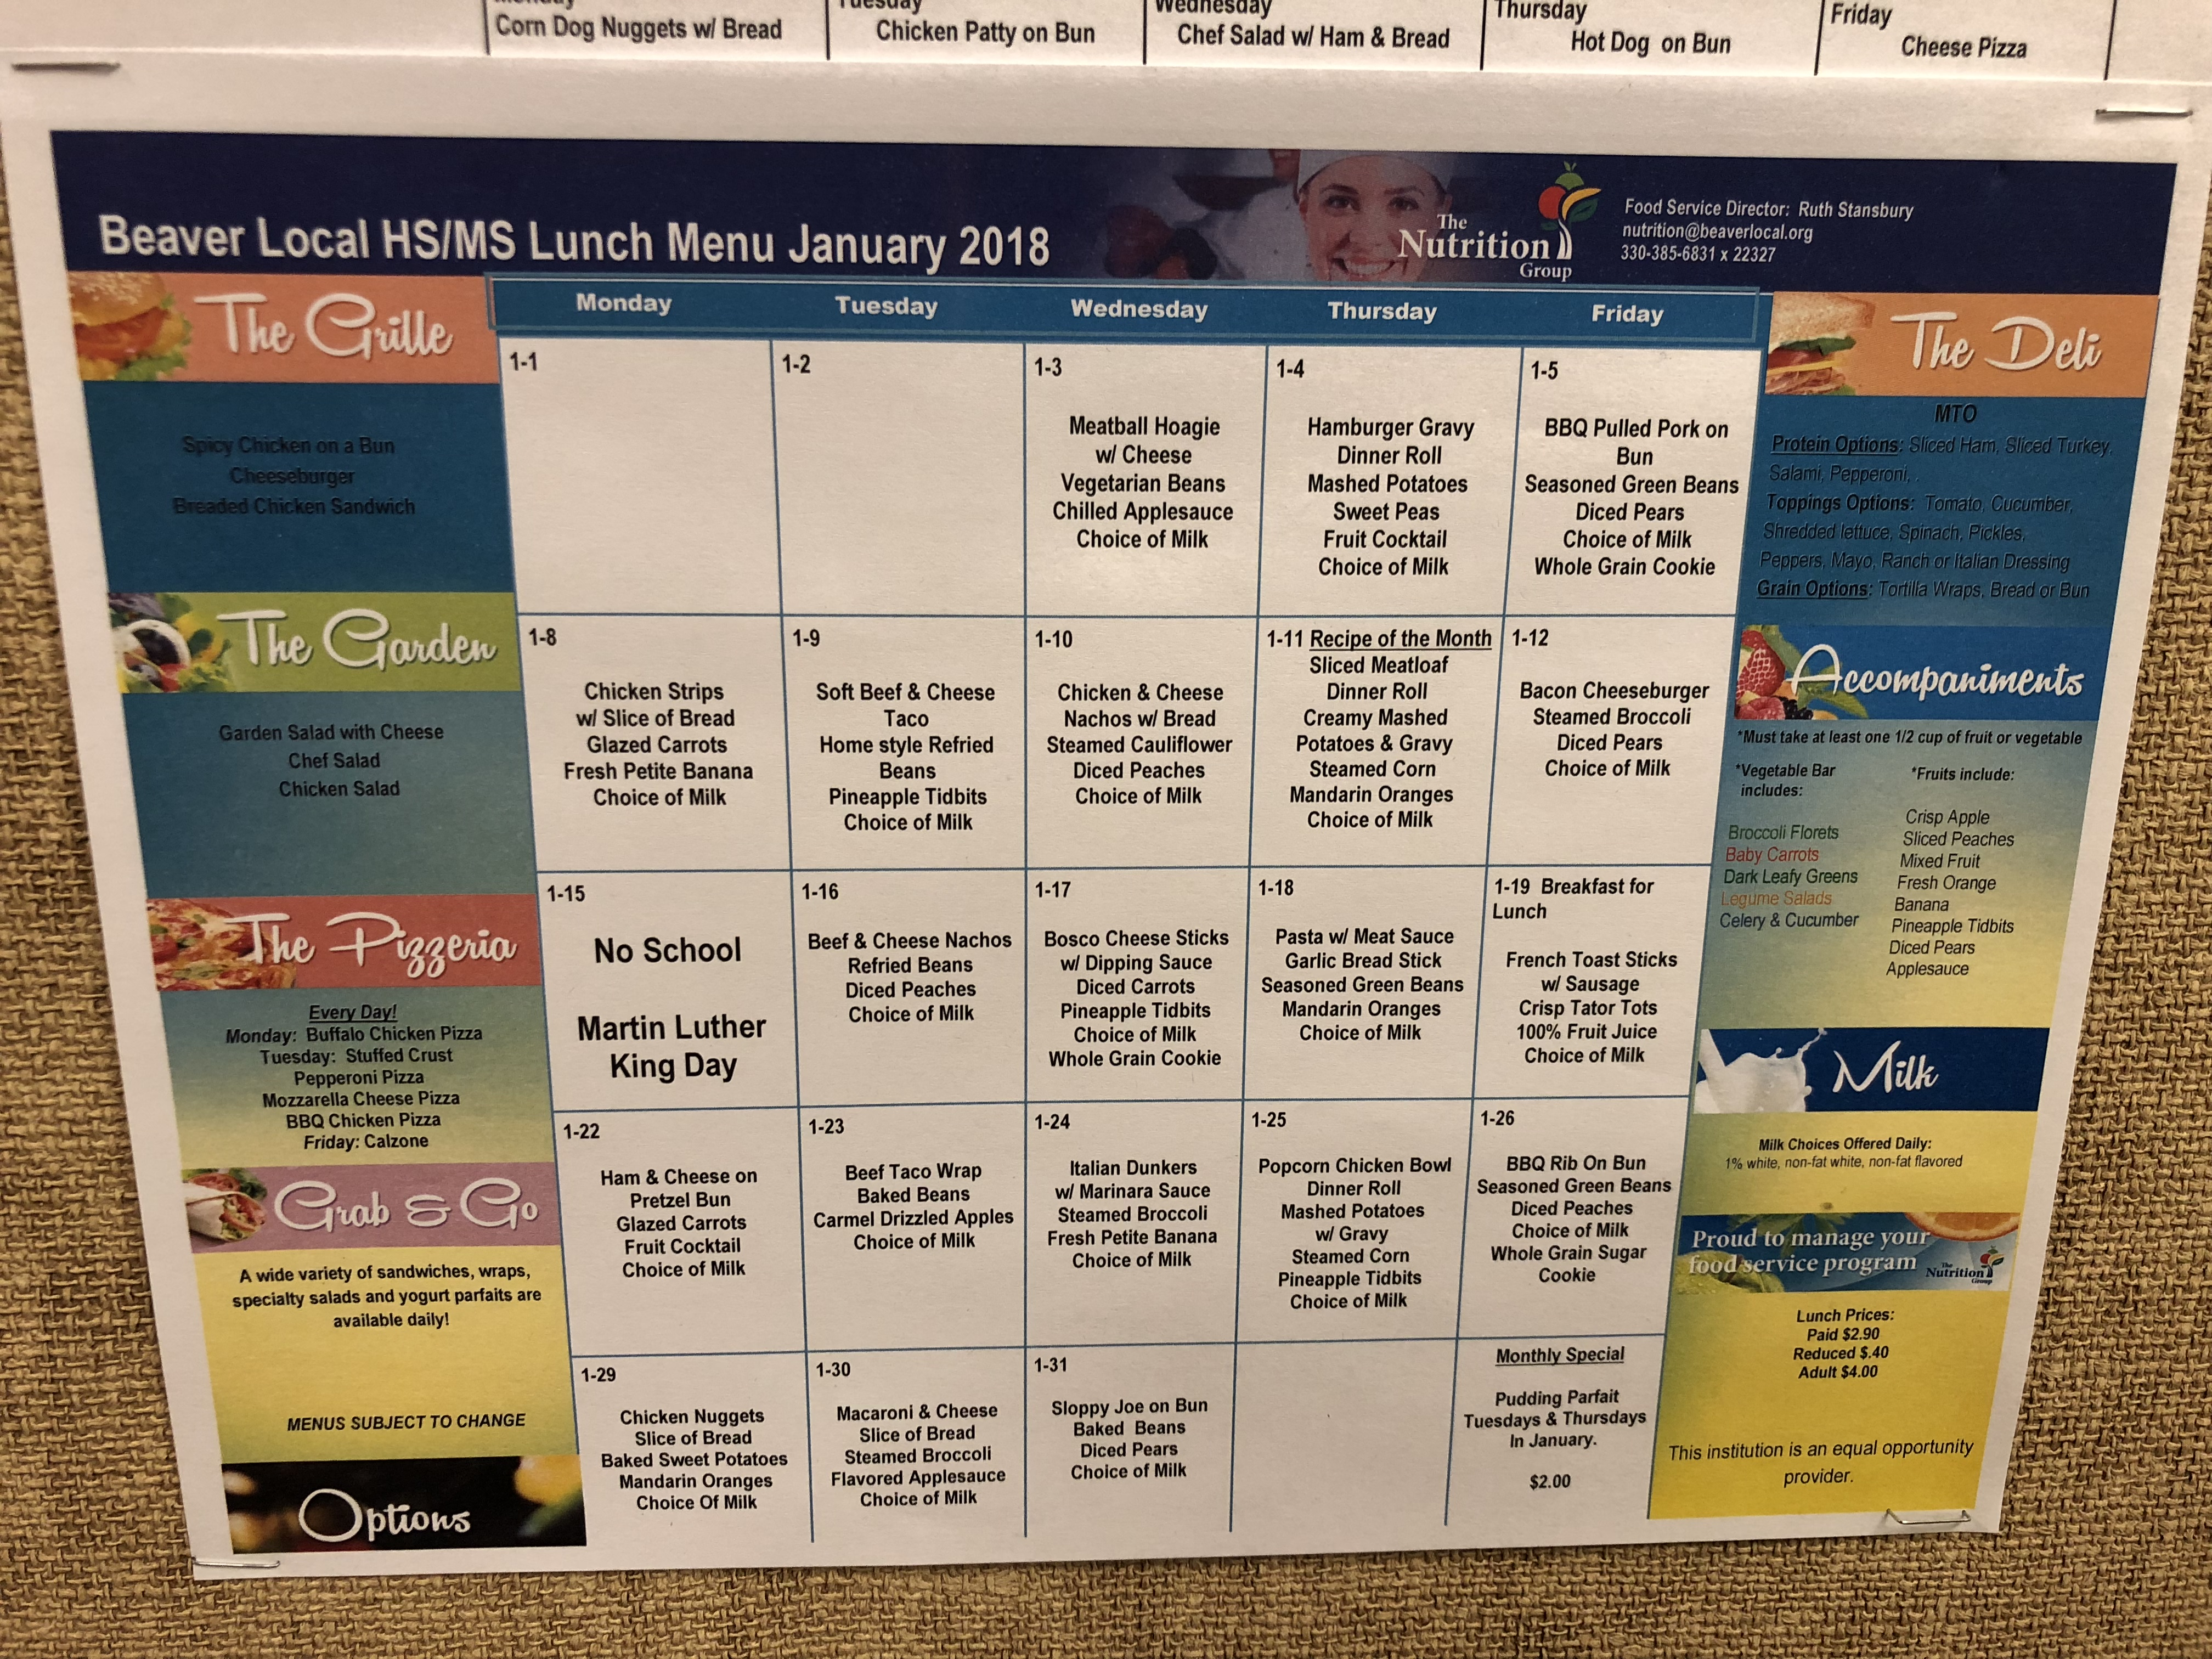 Please check out the Beaver Local High School and Middle School Lunch menus for the month of January